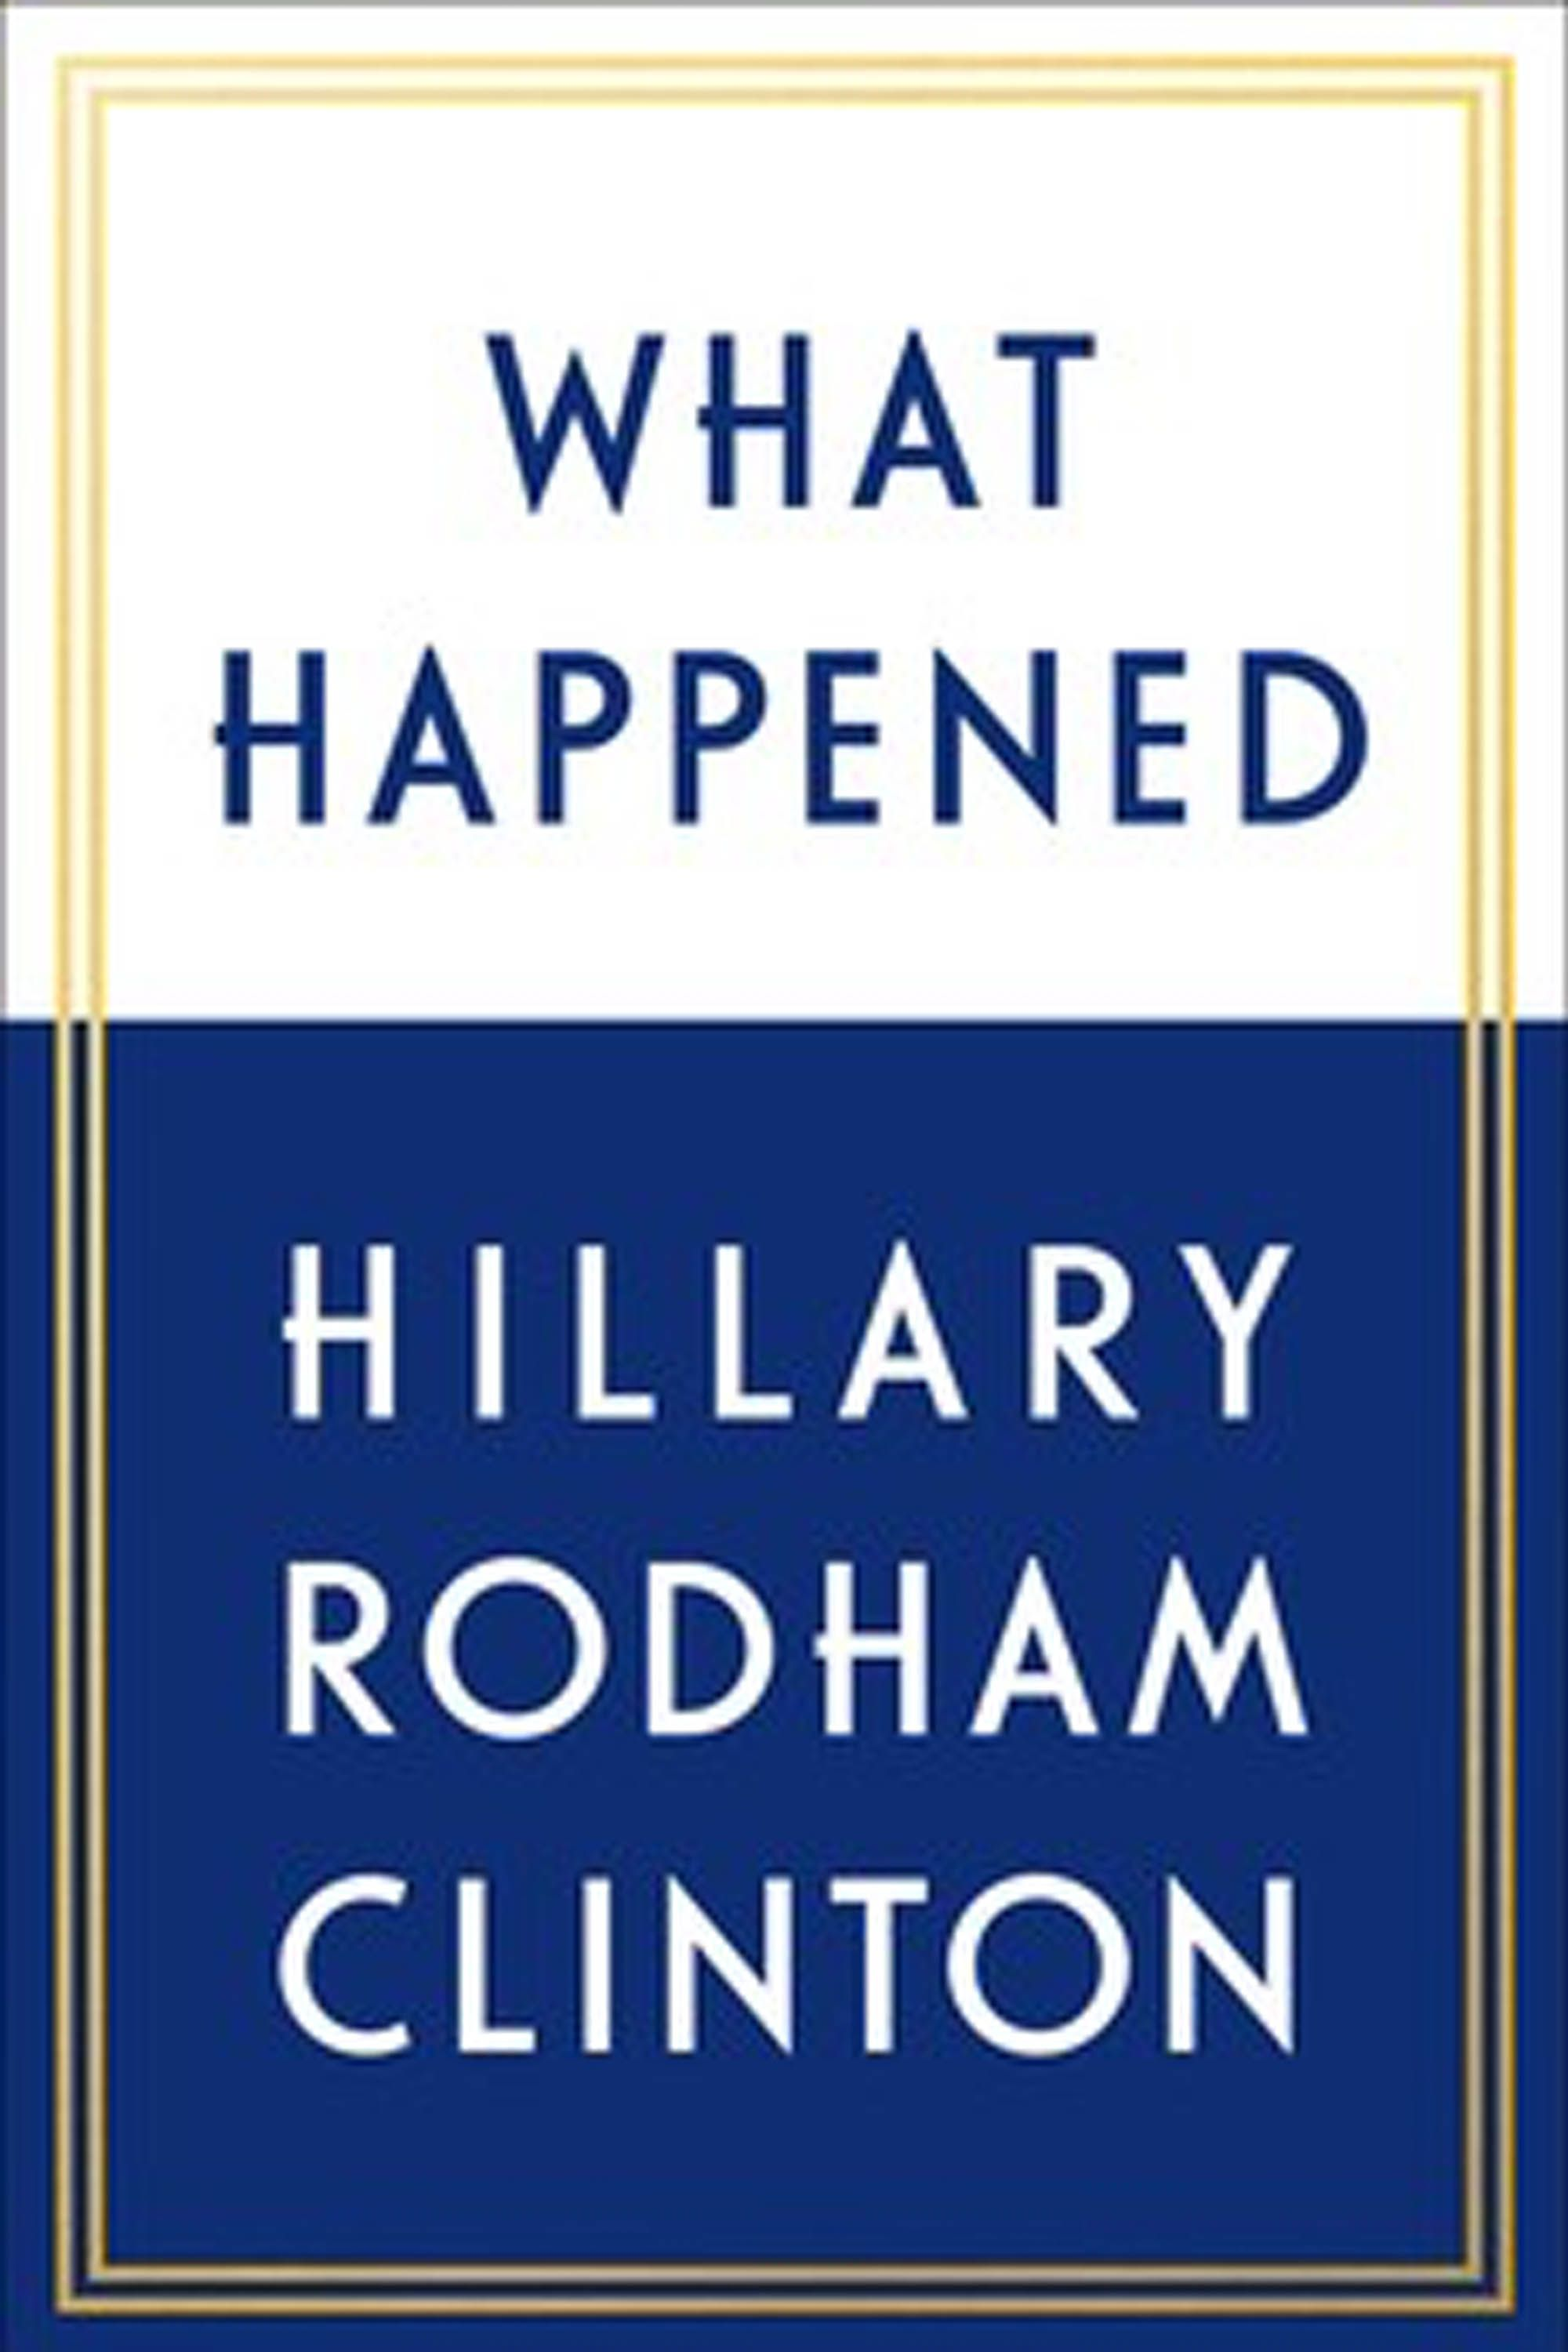 """<p>Theduality of presidential hopeful Hillary Clinton's book titleseems to weightwice as heavily as business, political, andreligious leaders publicly reconsider their support of Trump and white supremacists double down on theirs. We do know some of what transpired duringClinton'sunsuccessful political bid, butthose still wondering what<em data-verified=""""redactor"""" data-redactor-tag=""""em"""">did</em><span class=""""redactor-invisible-space"""" data-verified=""""redactor"""" data-redactor-tag=""""span"""" data-redactor-class=""""redactor-invisible-space"""">happen behind the scenes will want to read her account of those fateful months. (<a href=""""https://www.amazon.com/What-Happened-Hillary-Rodham-Clinton-ebook/dp/B01MYE7QP0"""" data-tracking-id=""""recirc-text-link"""">September 12, Simon & Schuster</a>)</span></p>"""